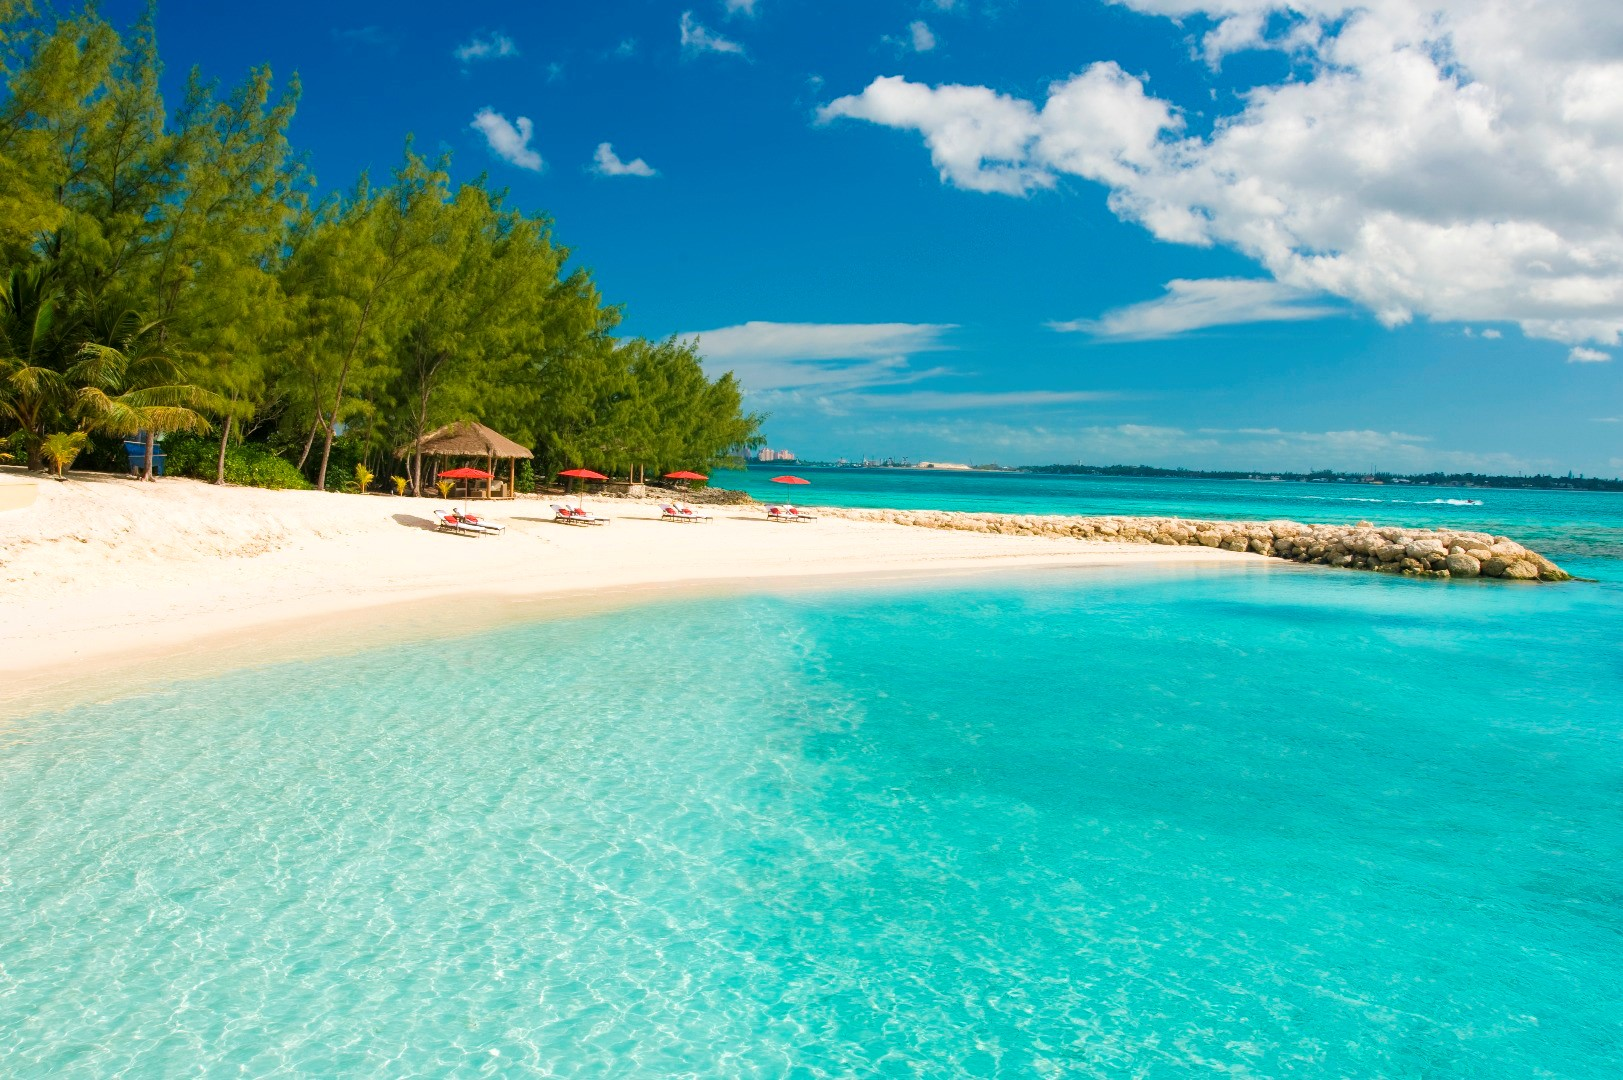 Sandals Royal Bahamian Spa & Offshore Island